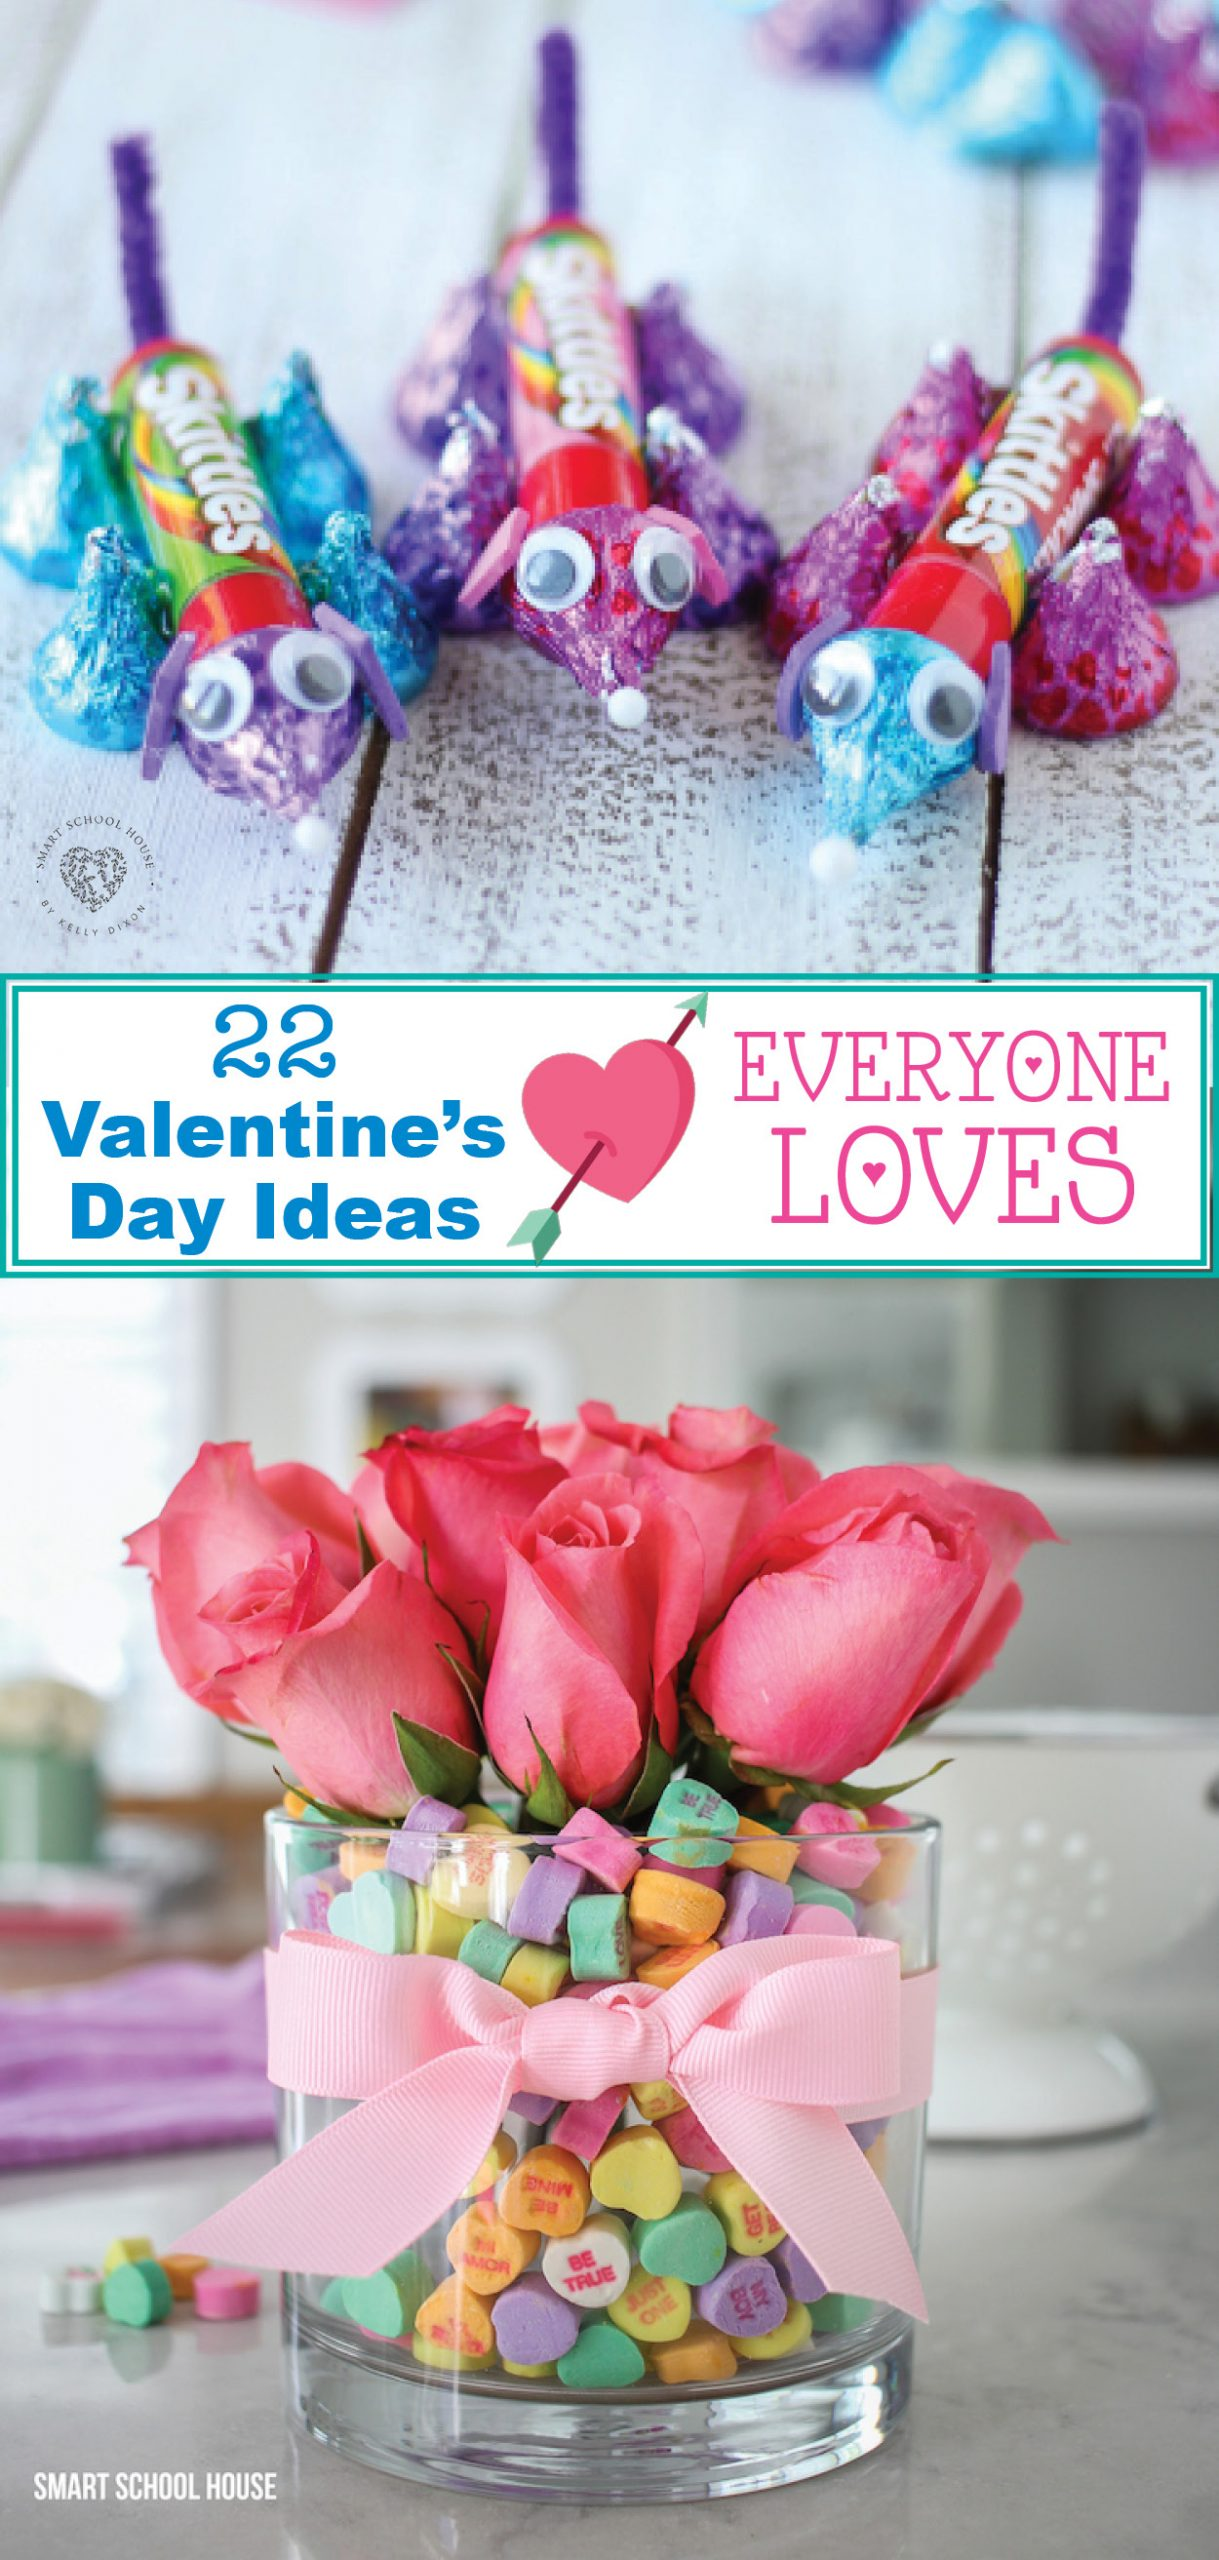 22 Valentine's Day Ideas Everyone Loves